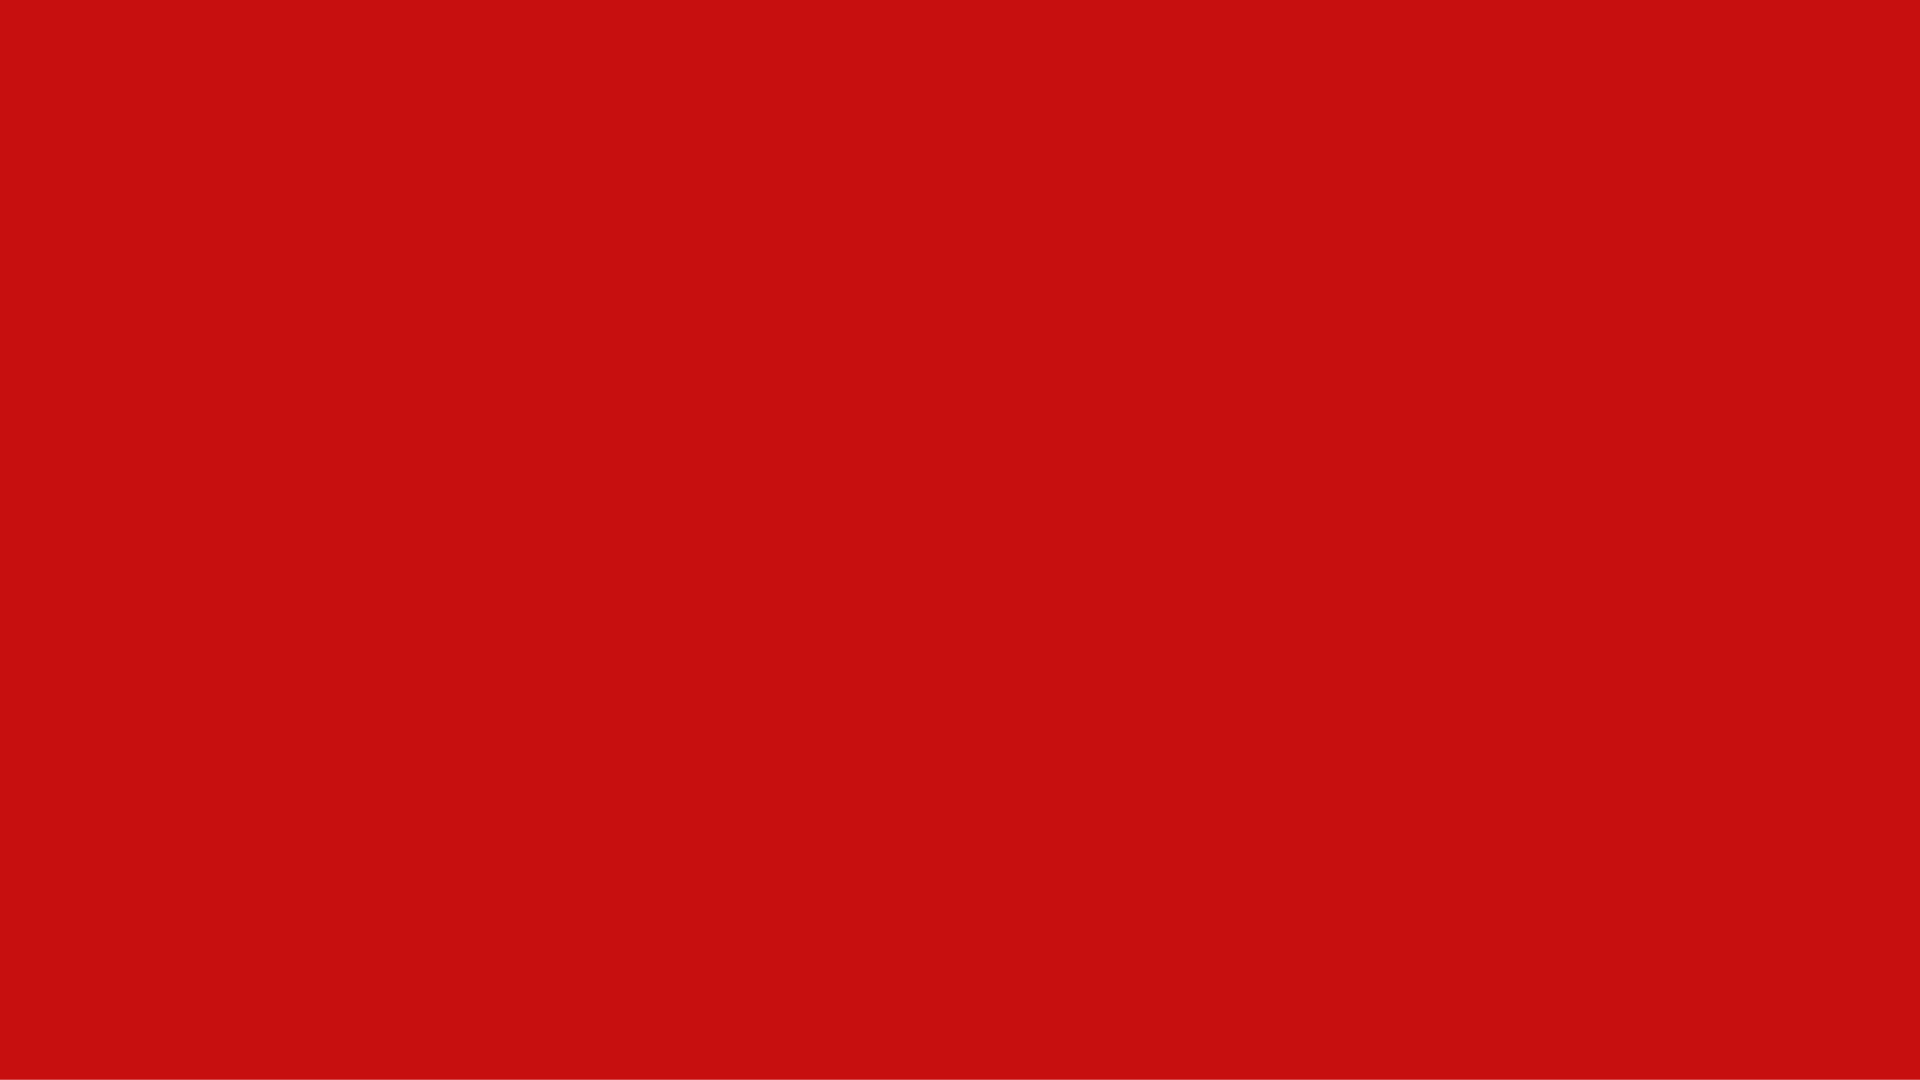 RED_BACKGROUND.png